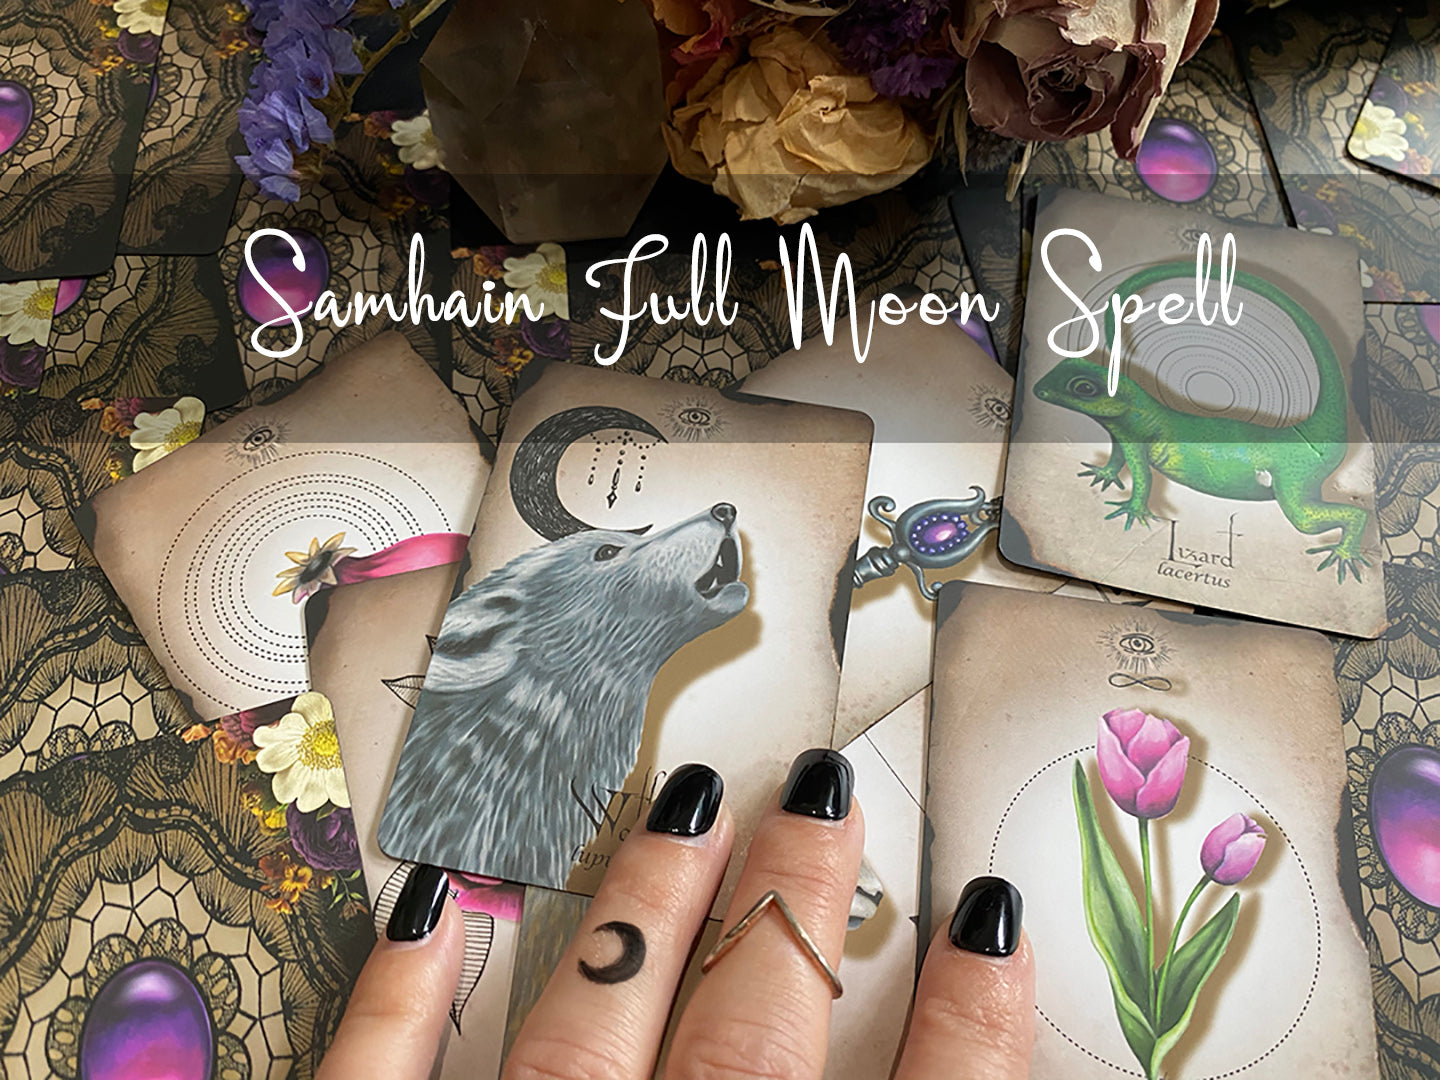 Samhain Full Moon 'Creating Connection' Spell